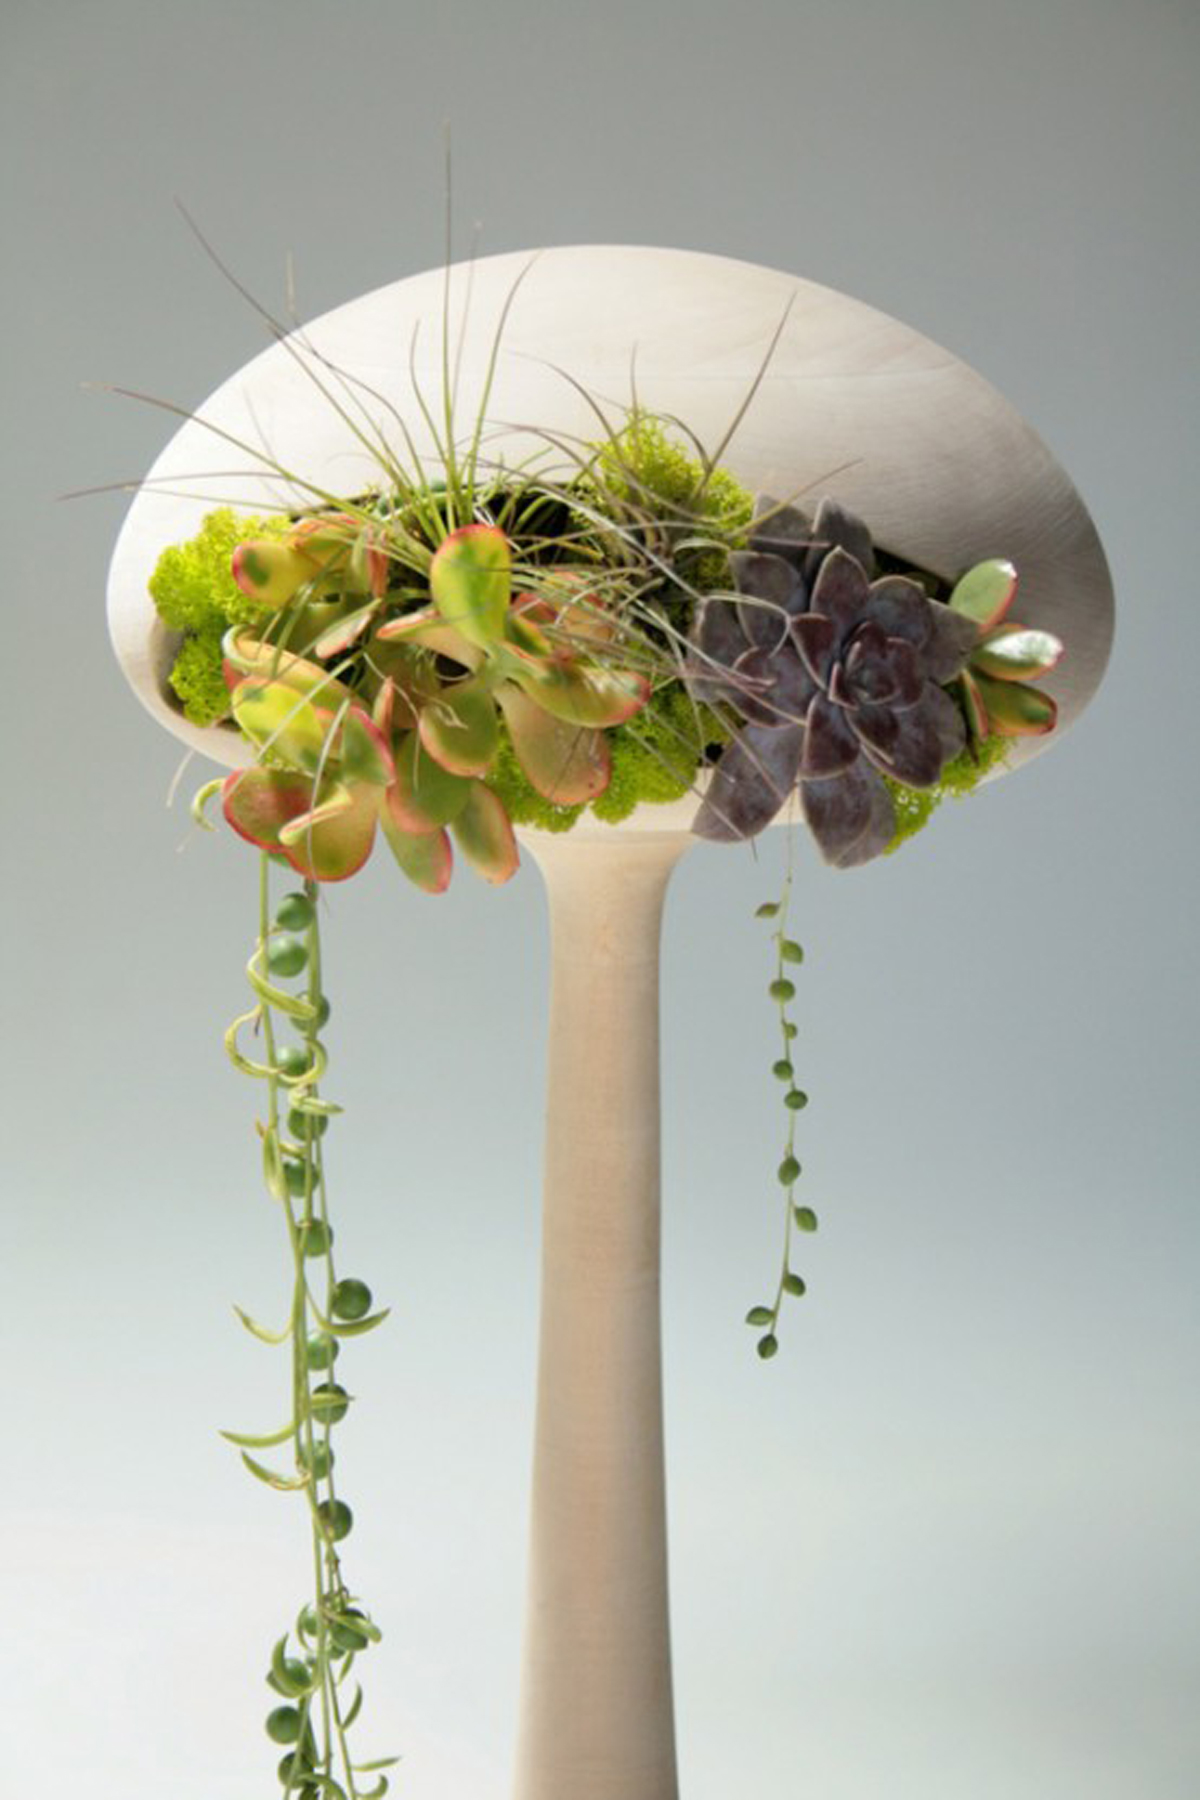 Expressive Indoor Pot and Planters Designs with Alien Look ...